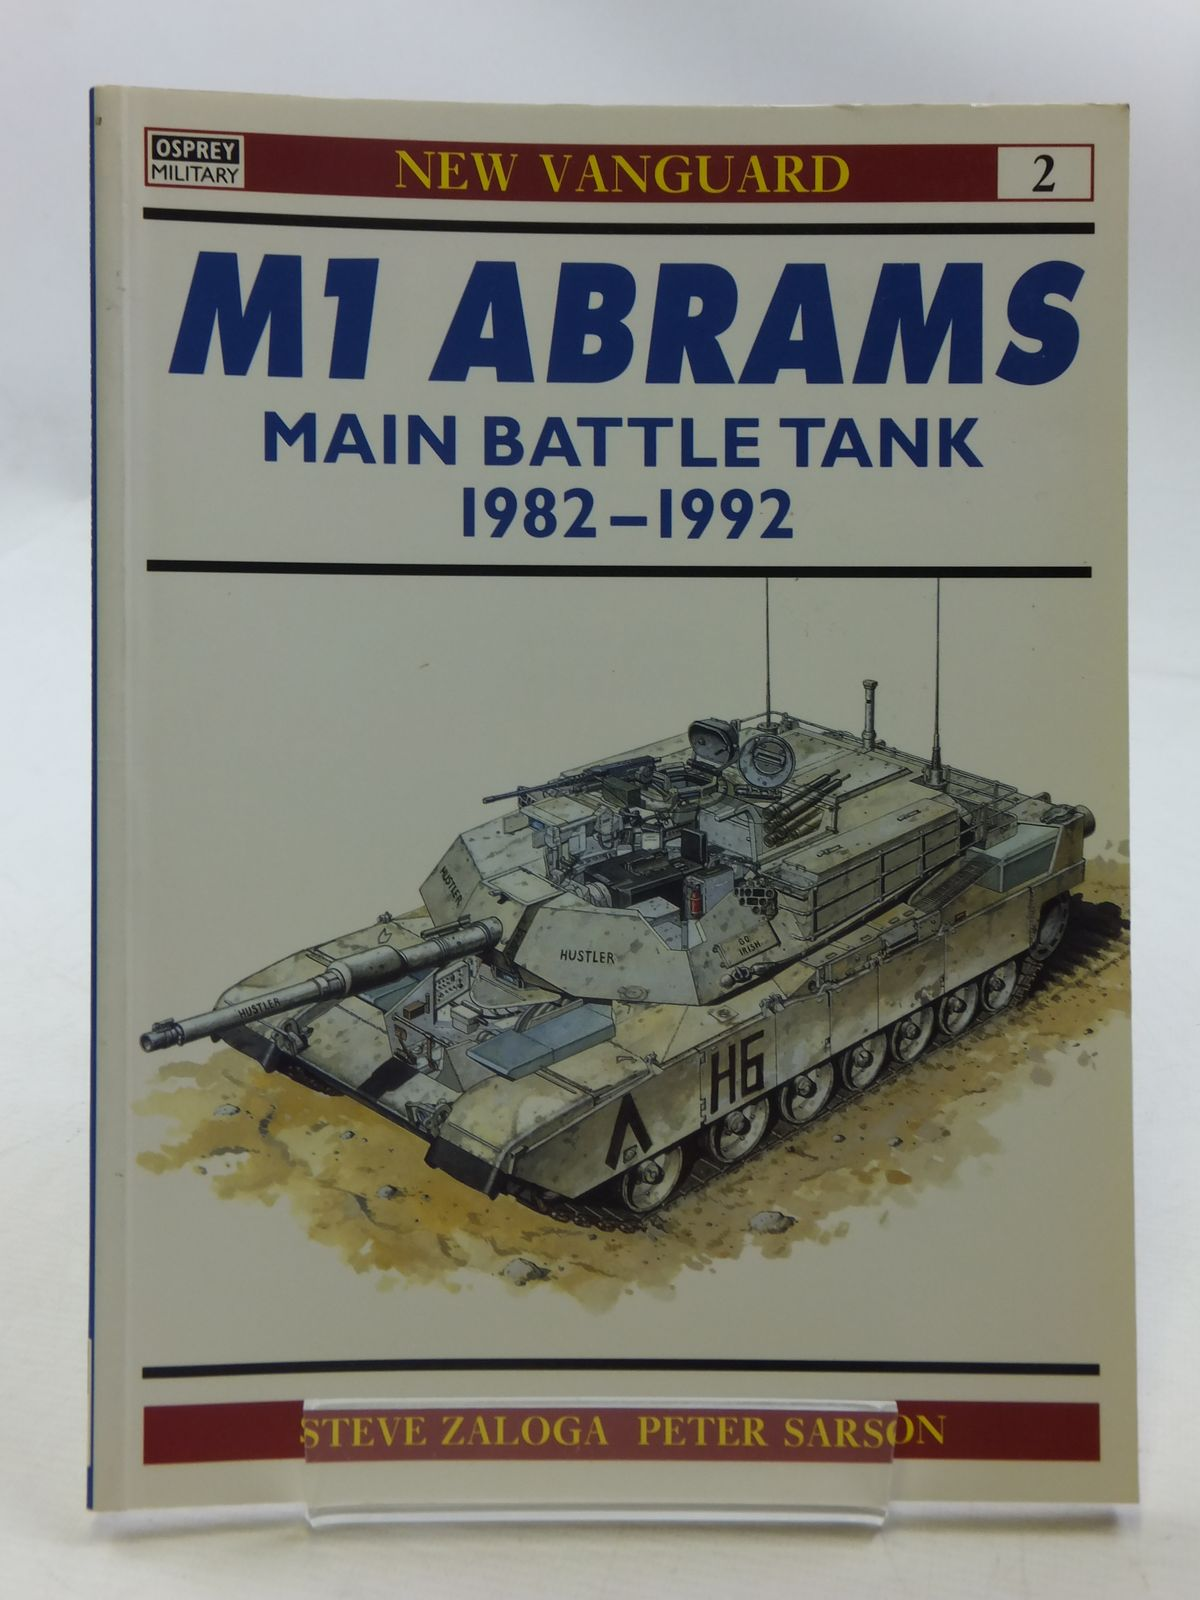 Photo of M1 ABRAMS MAIN BATTLE TANK 1982-1992 written by Zaloga, Steven J. illustrated by Sarson, Peter published by Osprey Publishing (STOCK CODE: 1605399)  for sale by Stella & Rose's Books